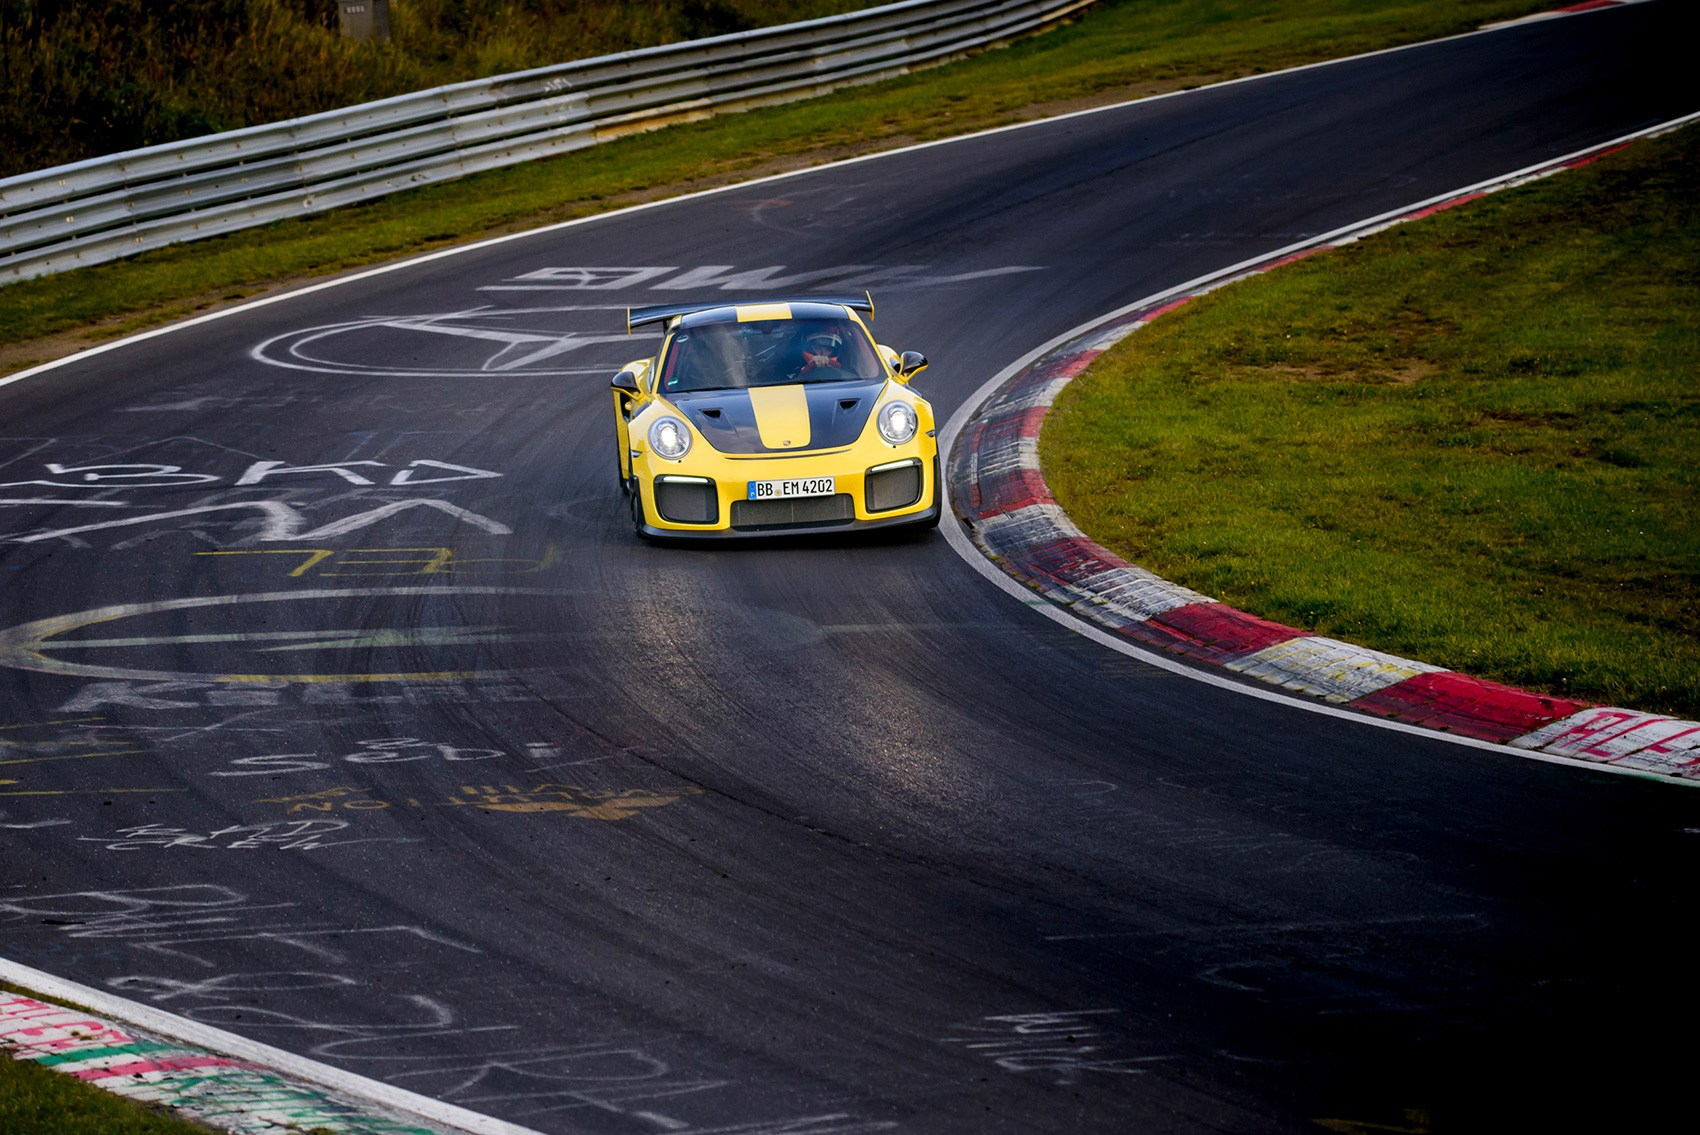 Porsche GT2 RS smashes Nurburgring record with 6:47 lap time